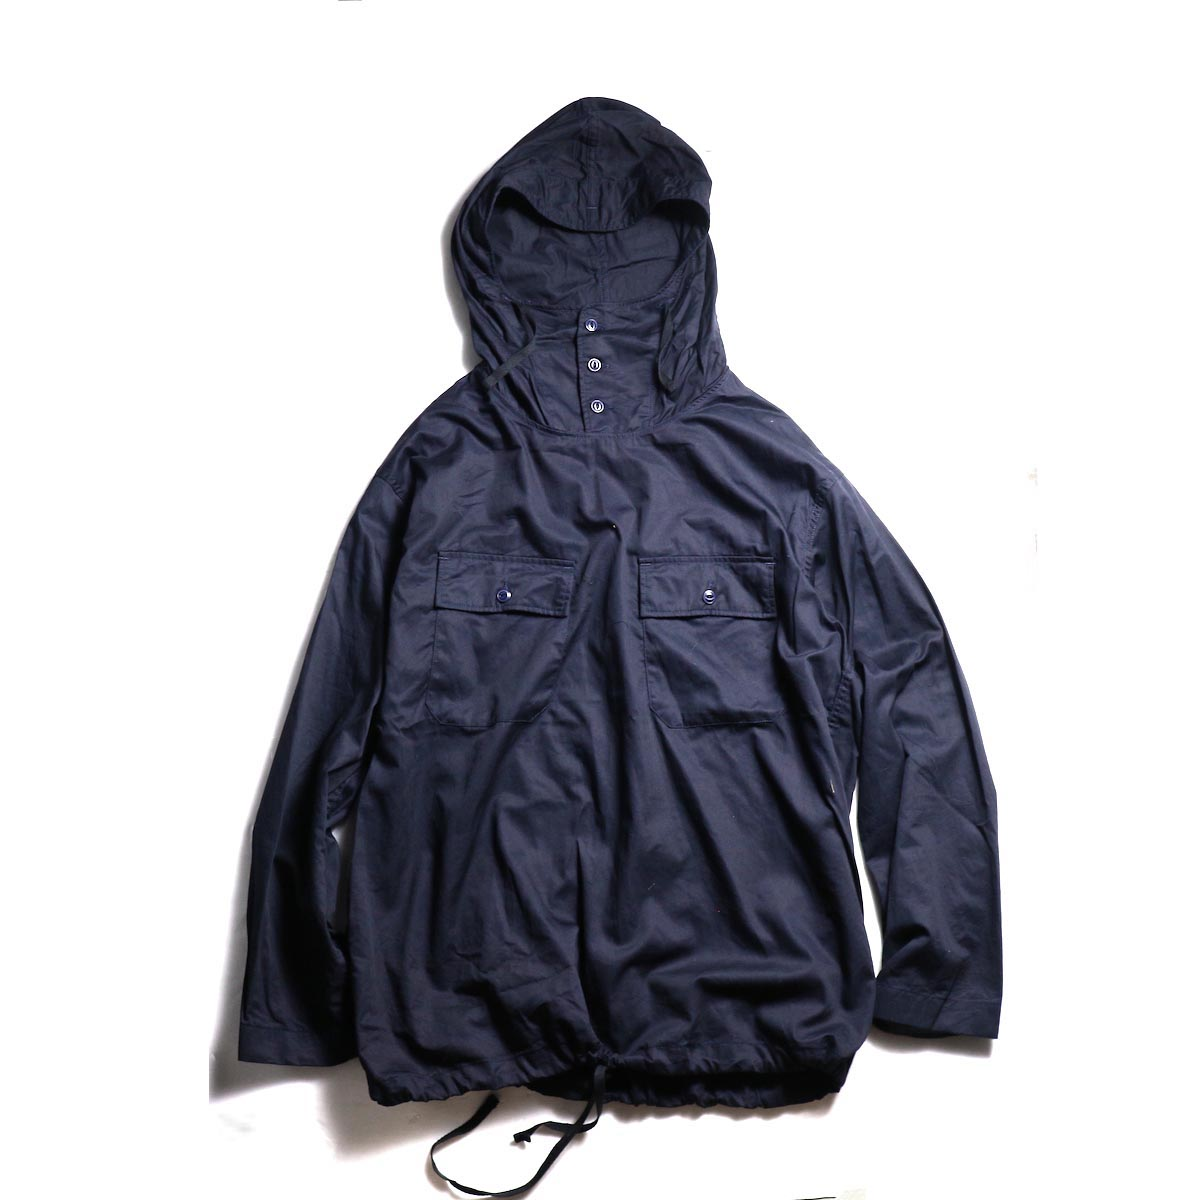 Engineered Garments / Cagoule Shirt -Fineline Twill (Dk.Navy)